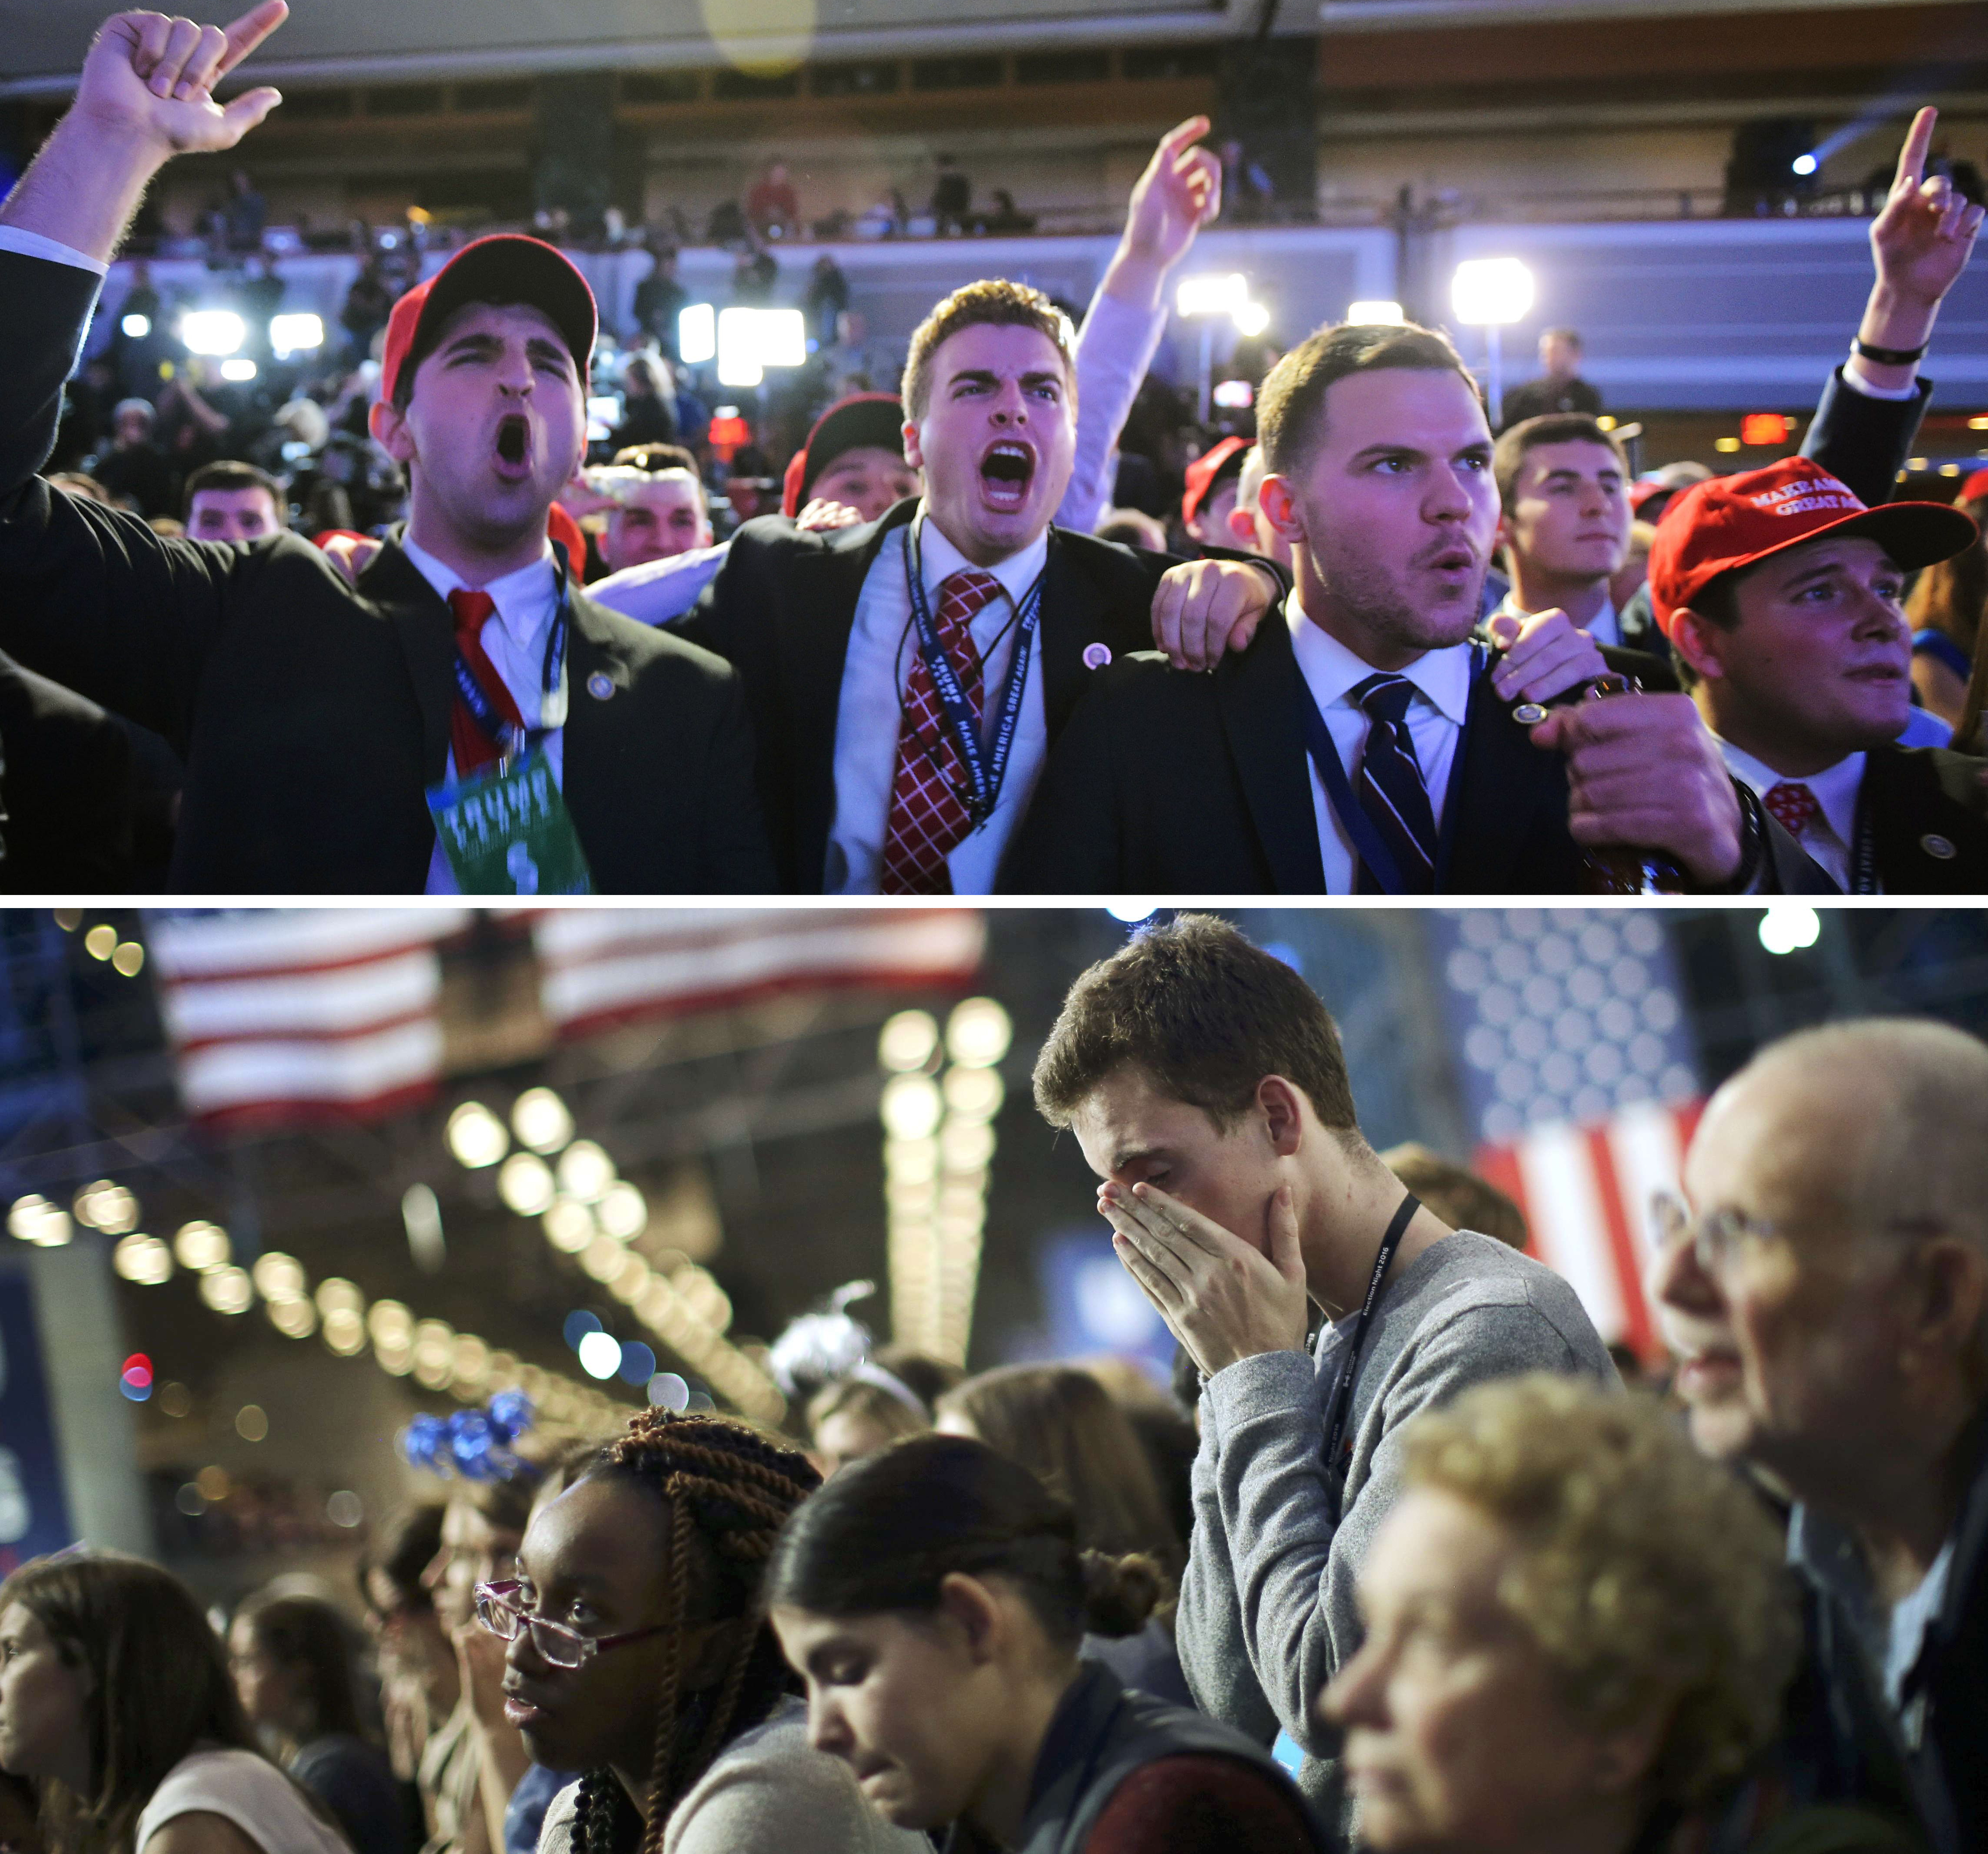 The highs and lows of the 2016 presidential election night. | REUTERS